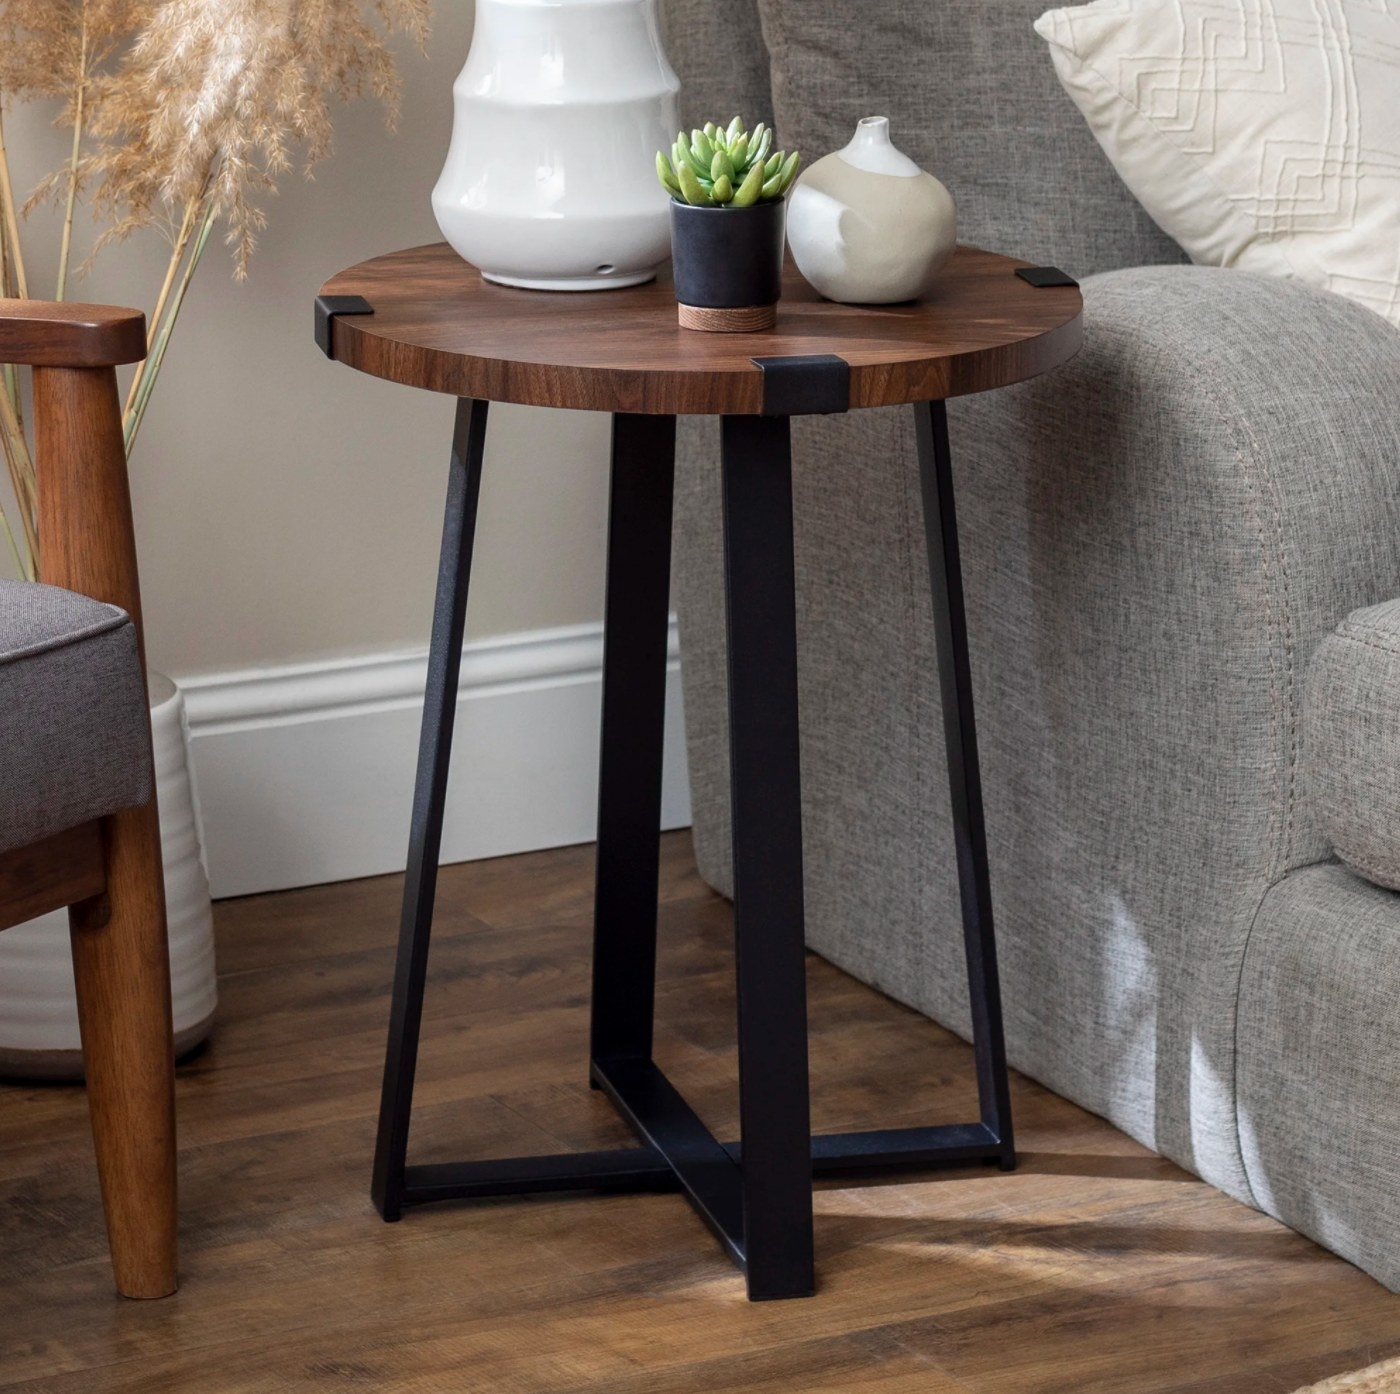 The cross legs end table in dark walnut